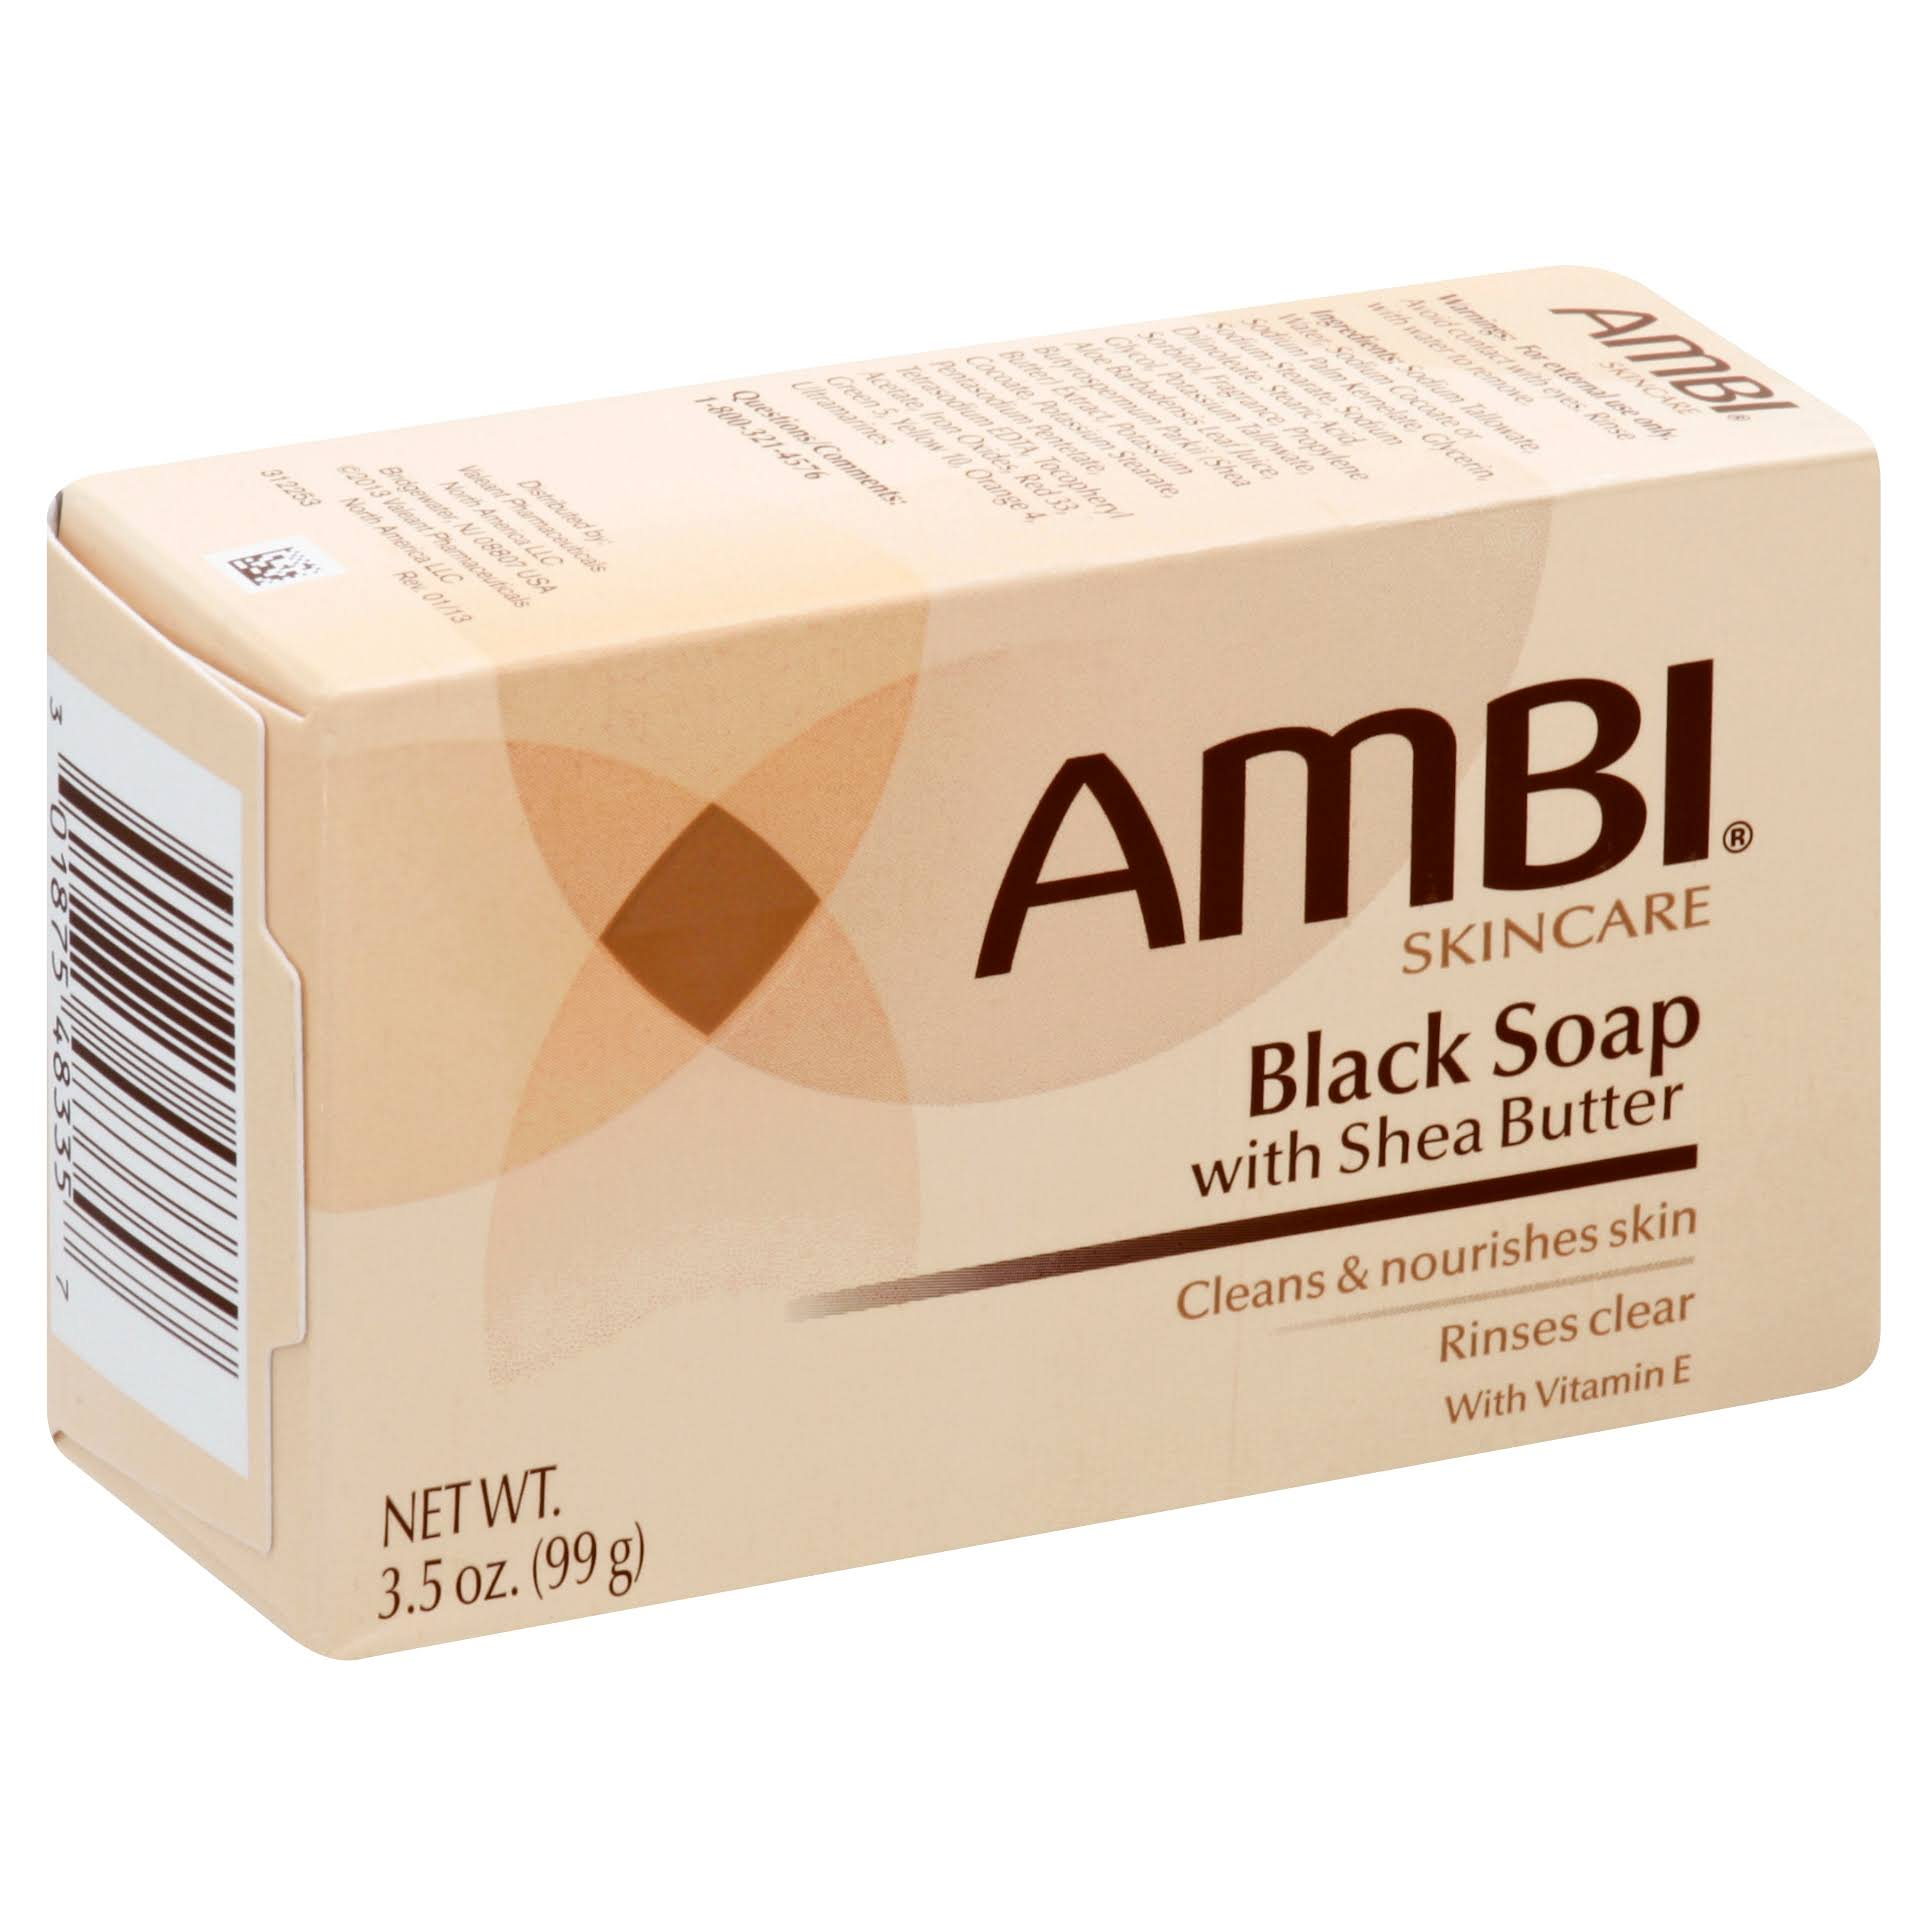 Ambi Skincare Black Soap with Shea Butter - 3.5oz